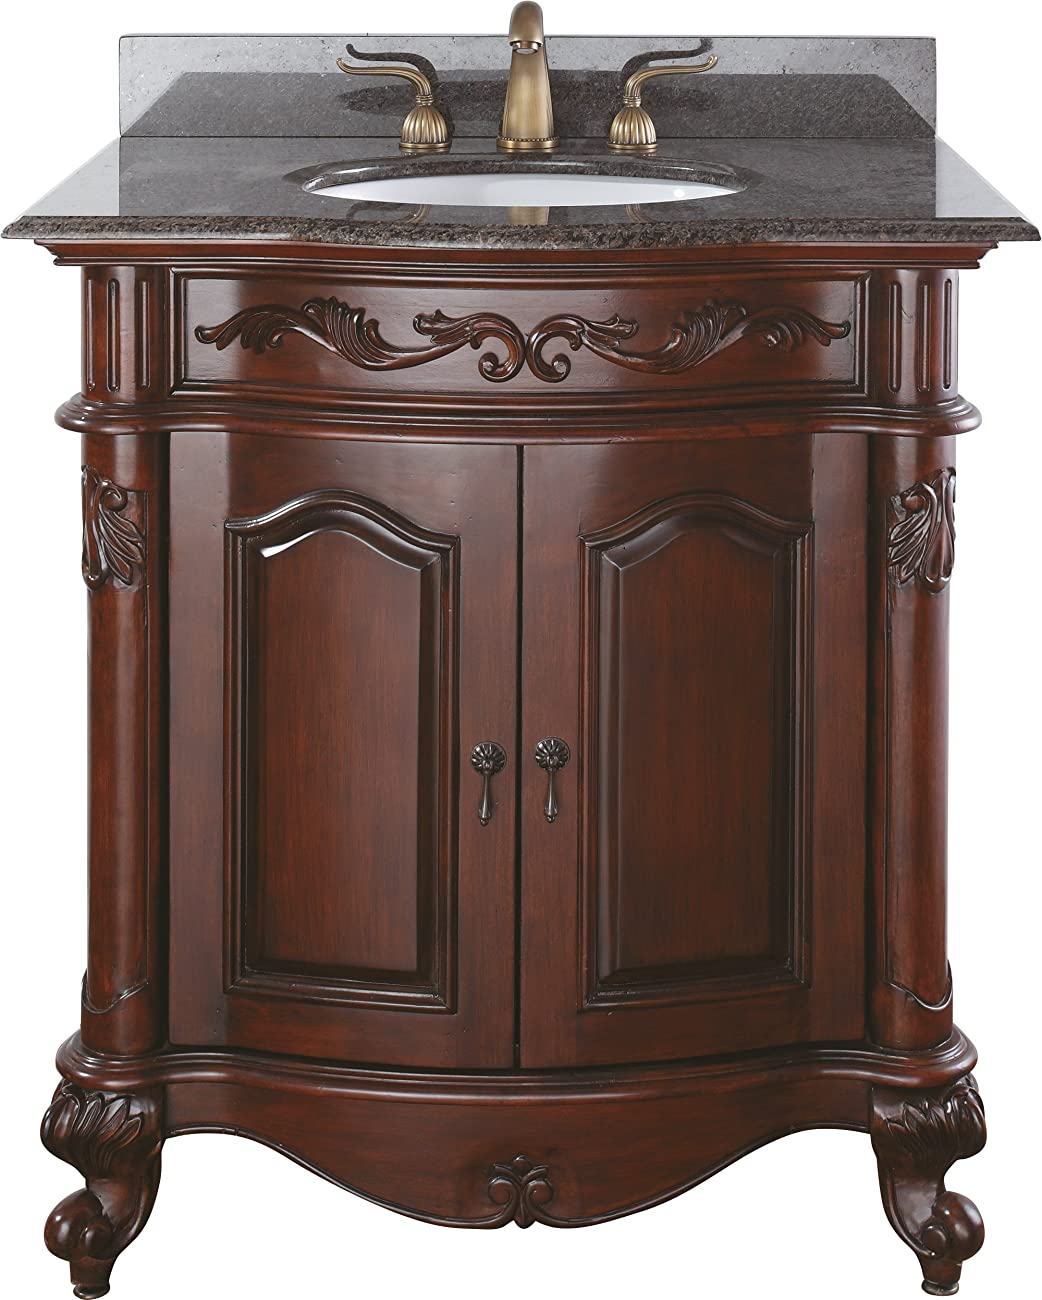 Avanity Provence 30 in. Vanity Only in Antique Cherry finish 0